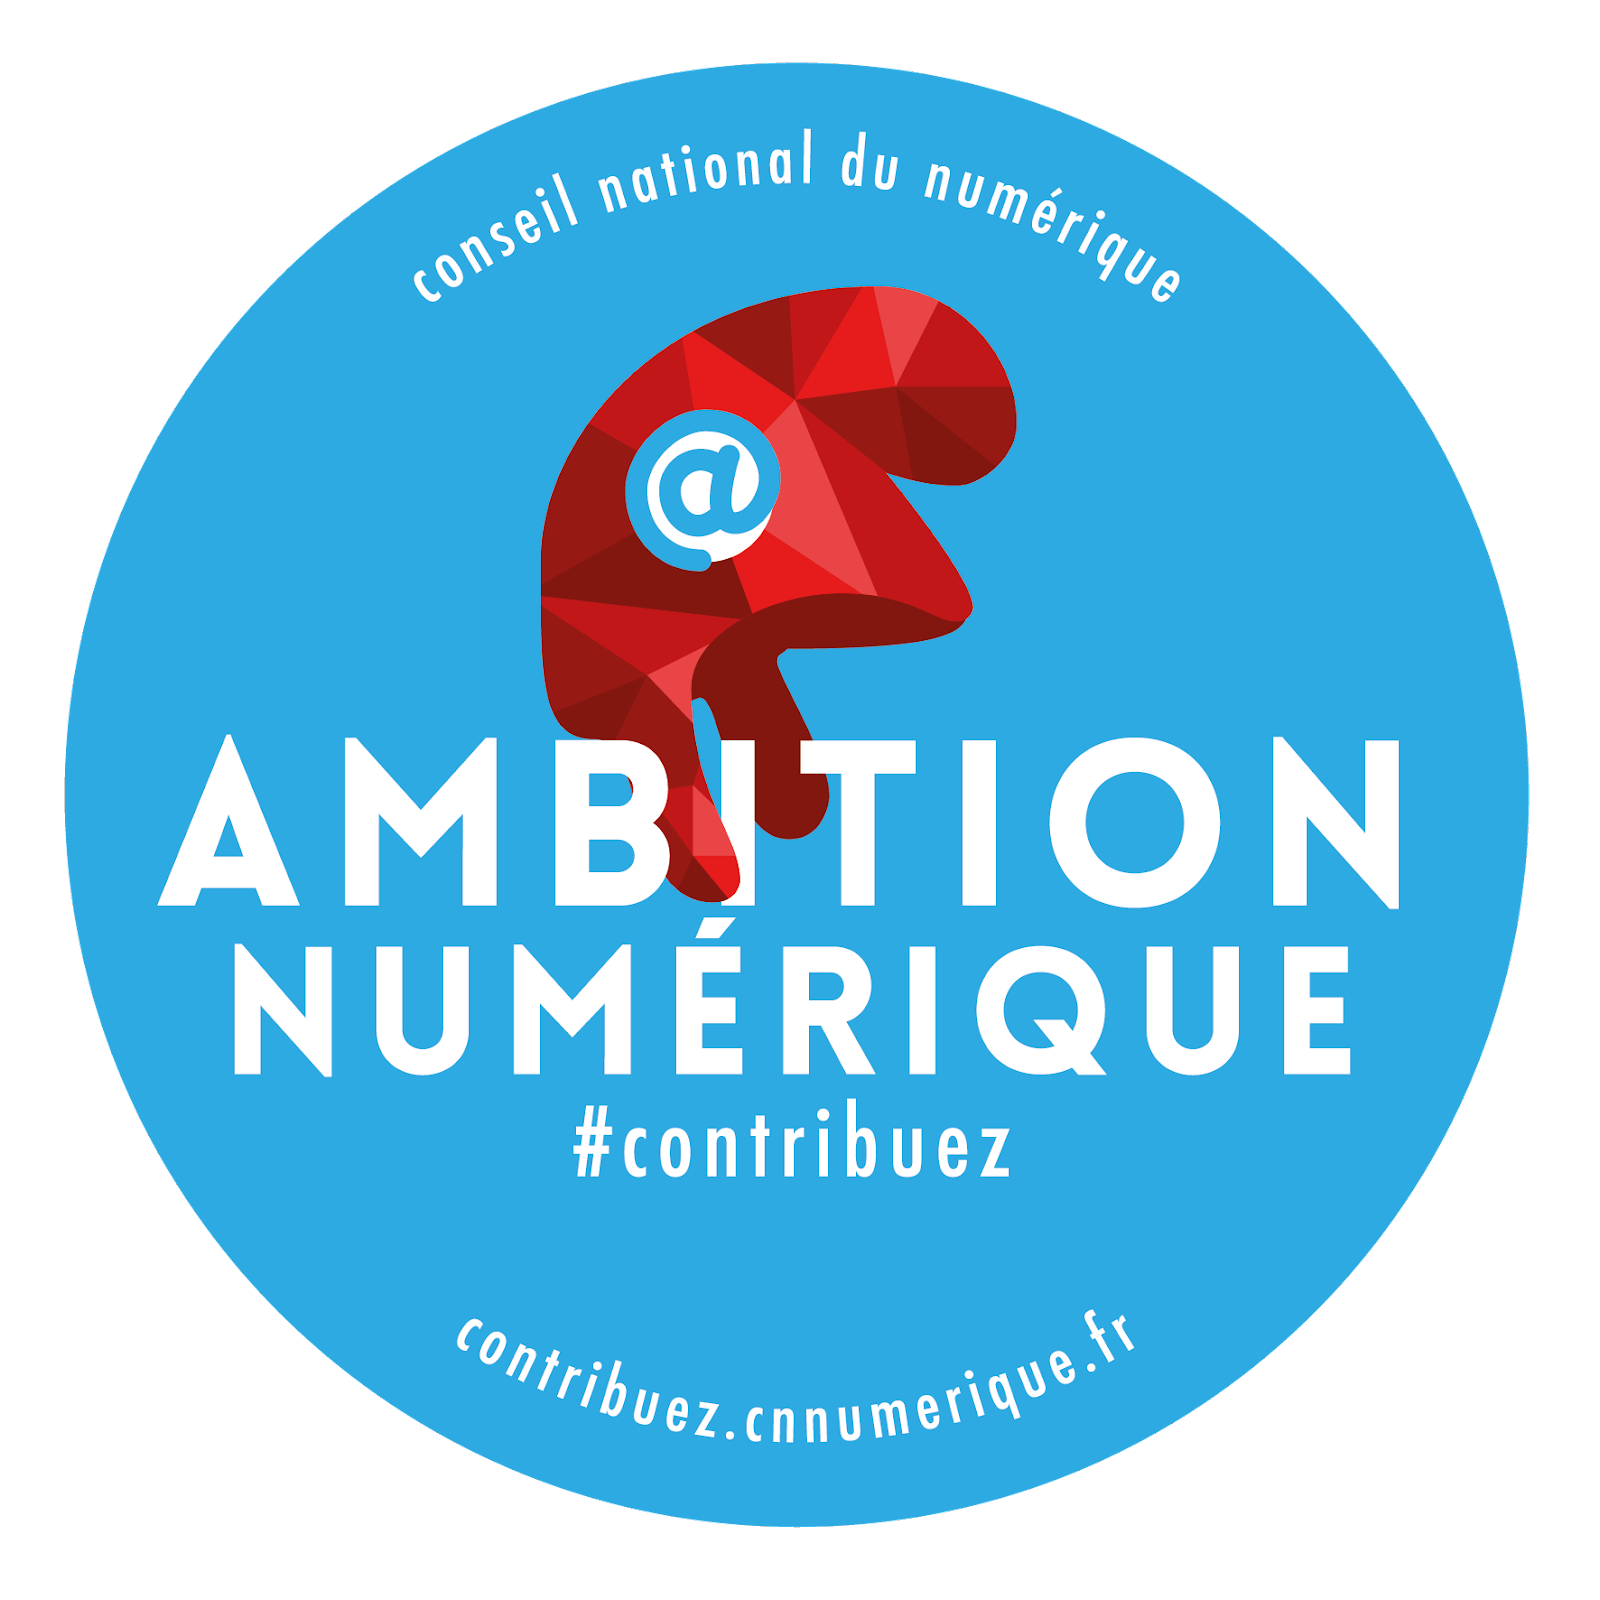 http://www.cnnumerique.fr/wp-content/uploads/2014/10/Stickers-Ambition-HD.png